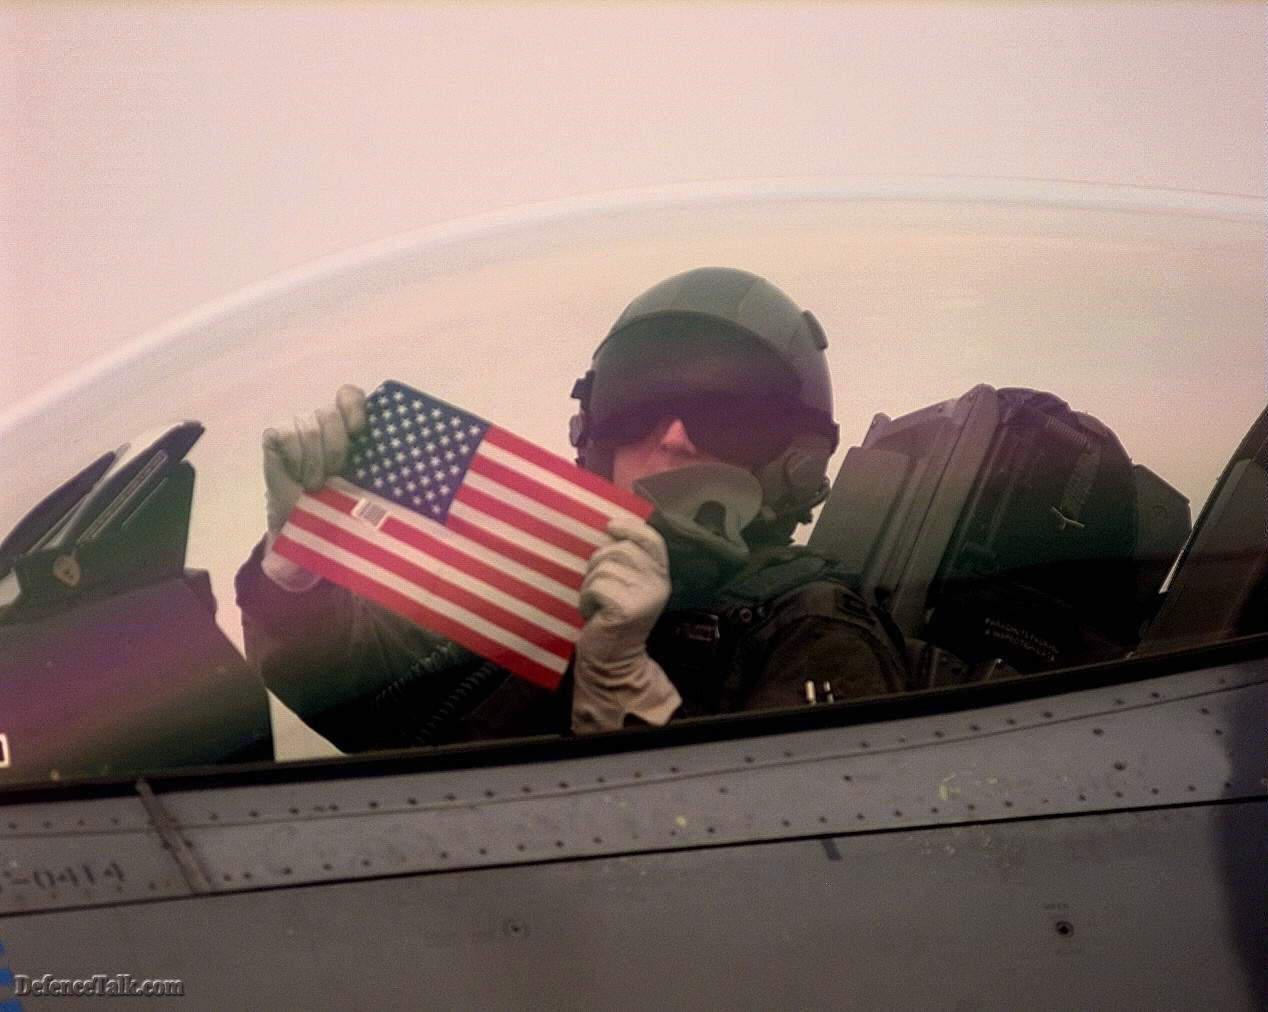 USAF pilot with US flag.